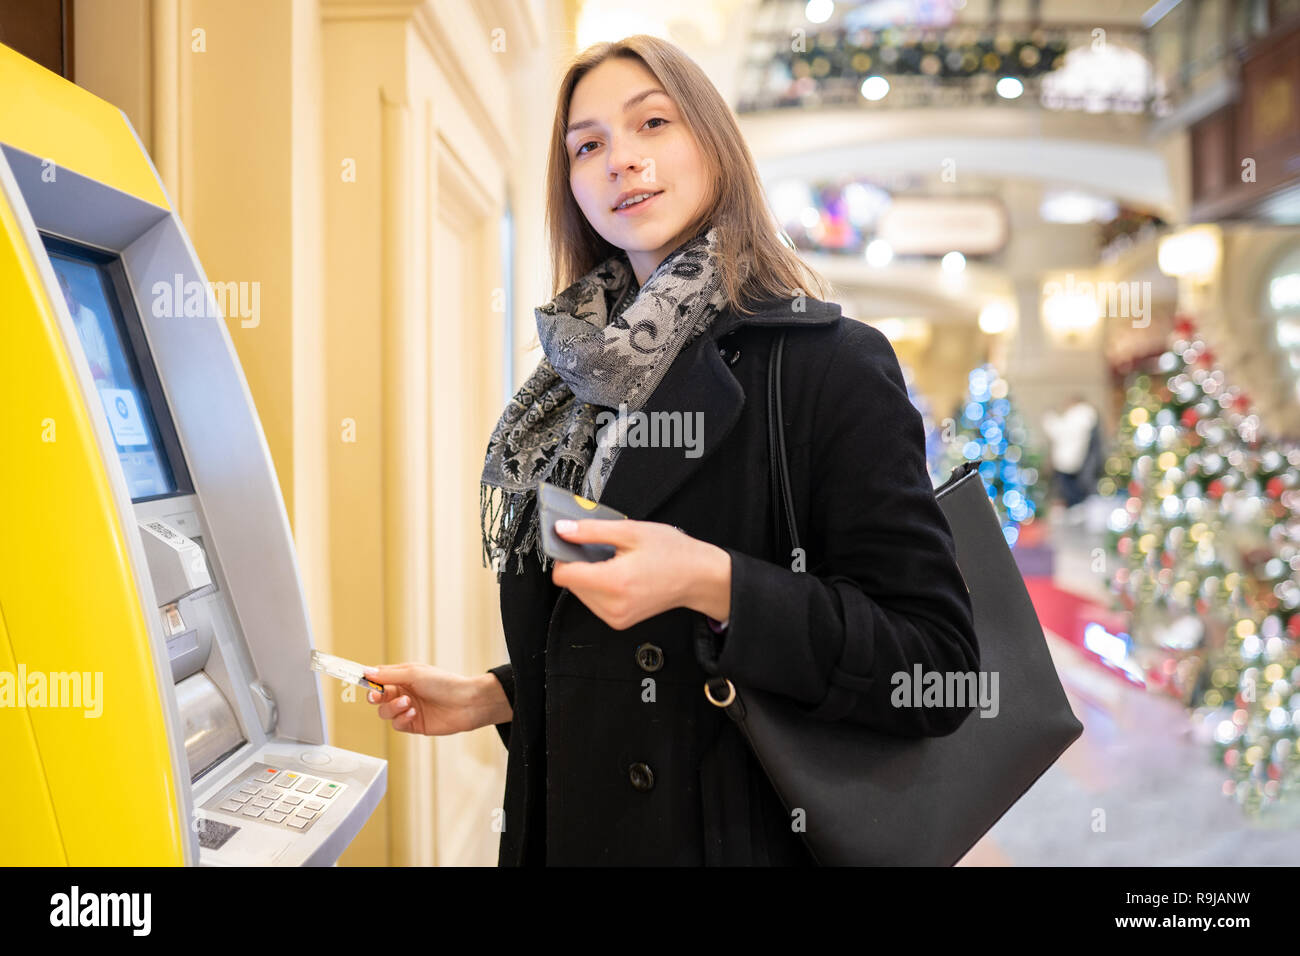 Image of happy brunette with bank card at ATM on blurred background - Stock Image